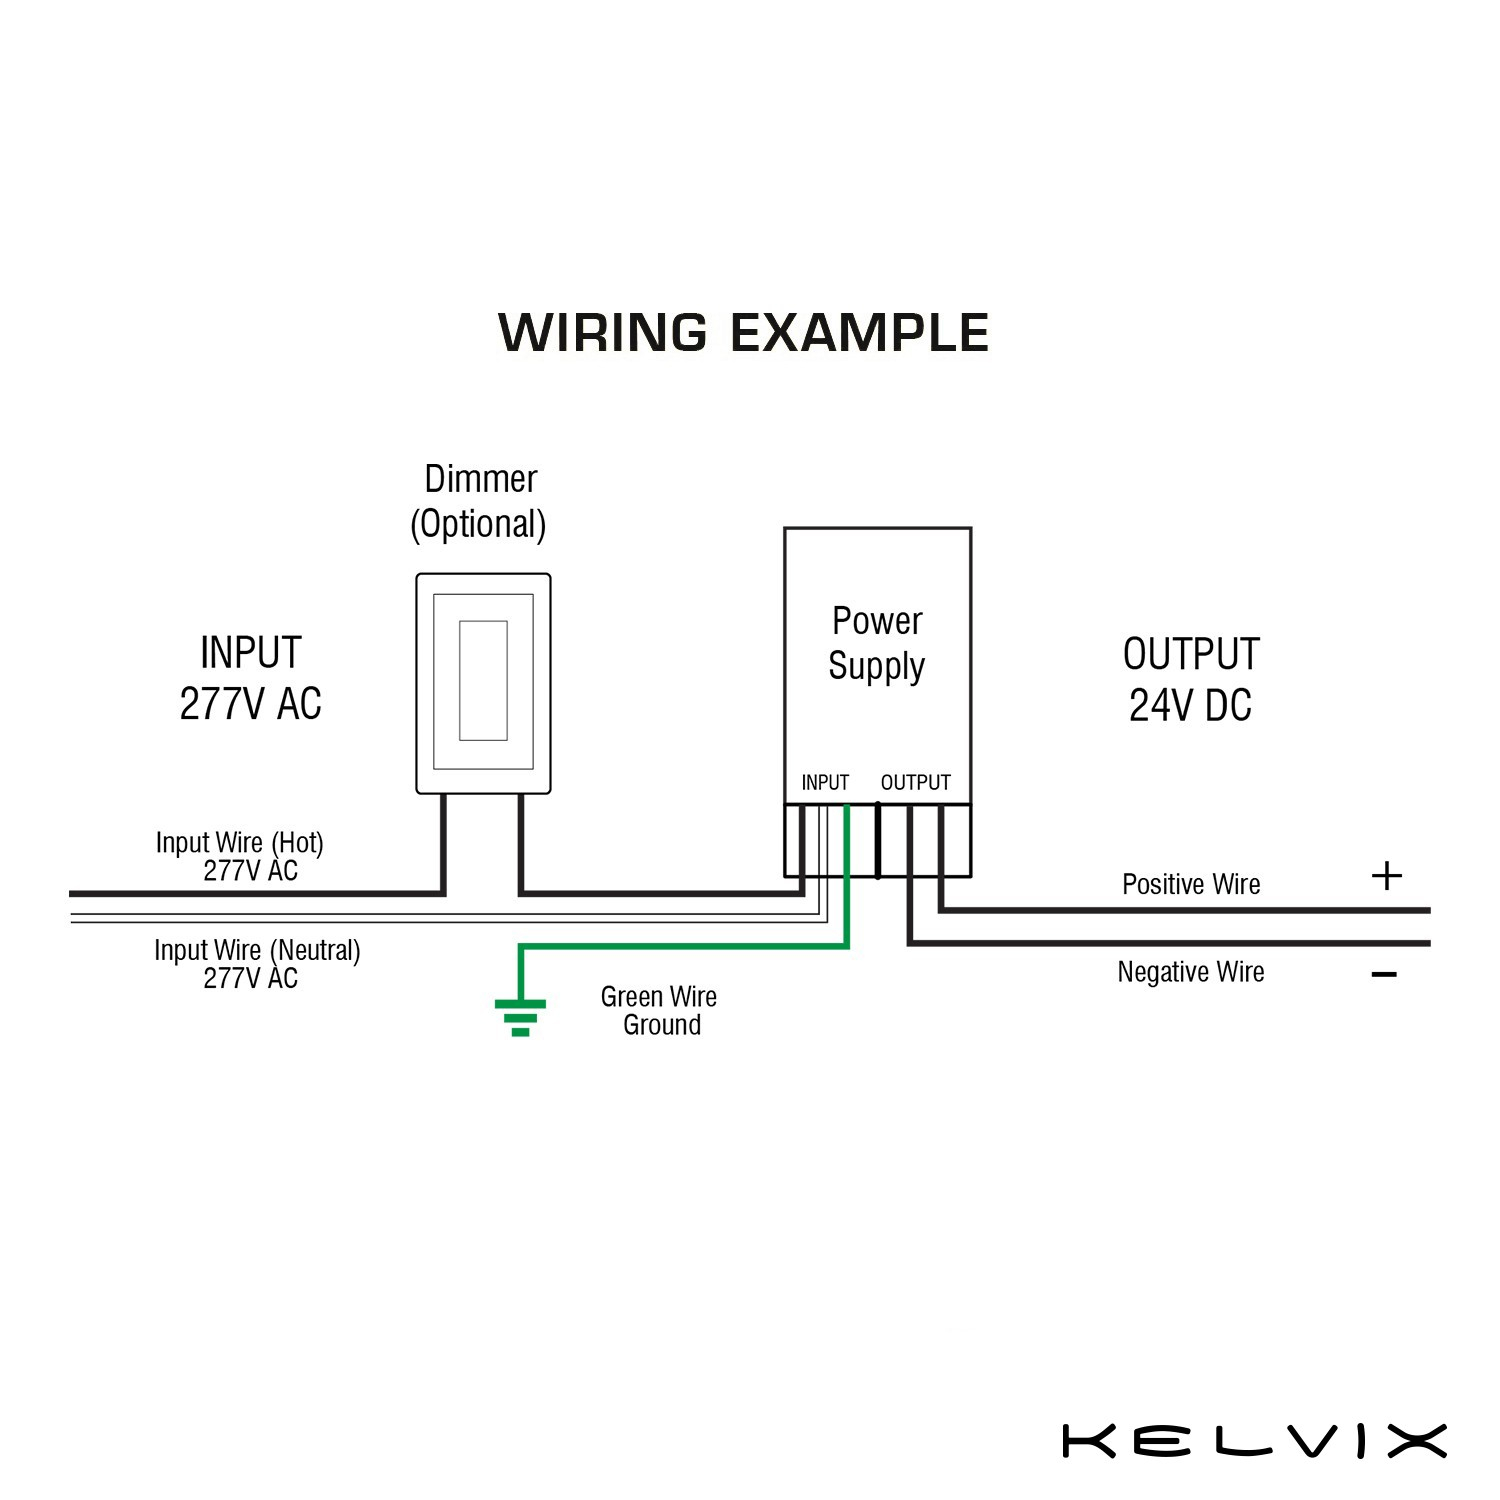 hid wiring 277 volt read all wiring diagram Basic Wiring Diagram